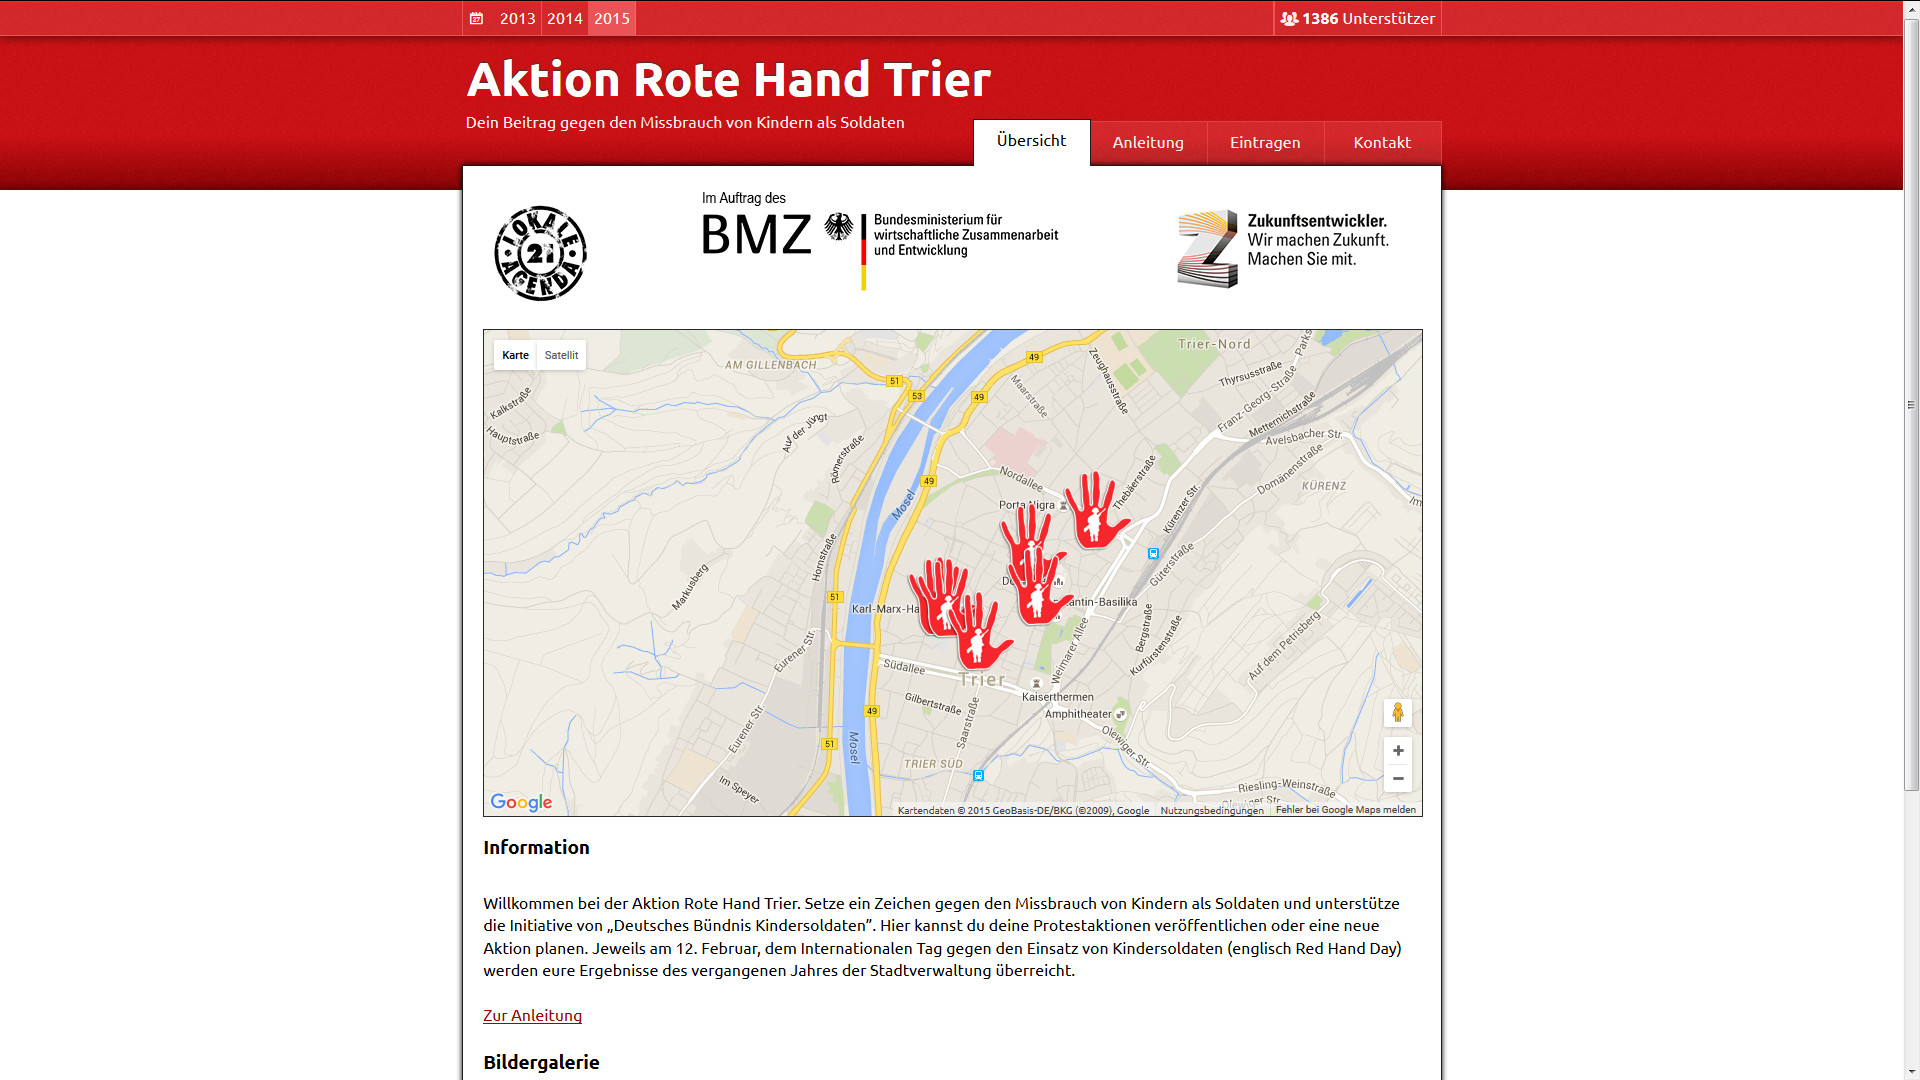 Aktion Rote Hand Trier